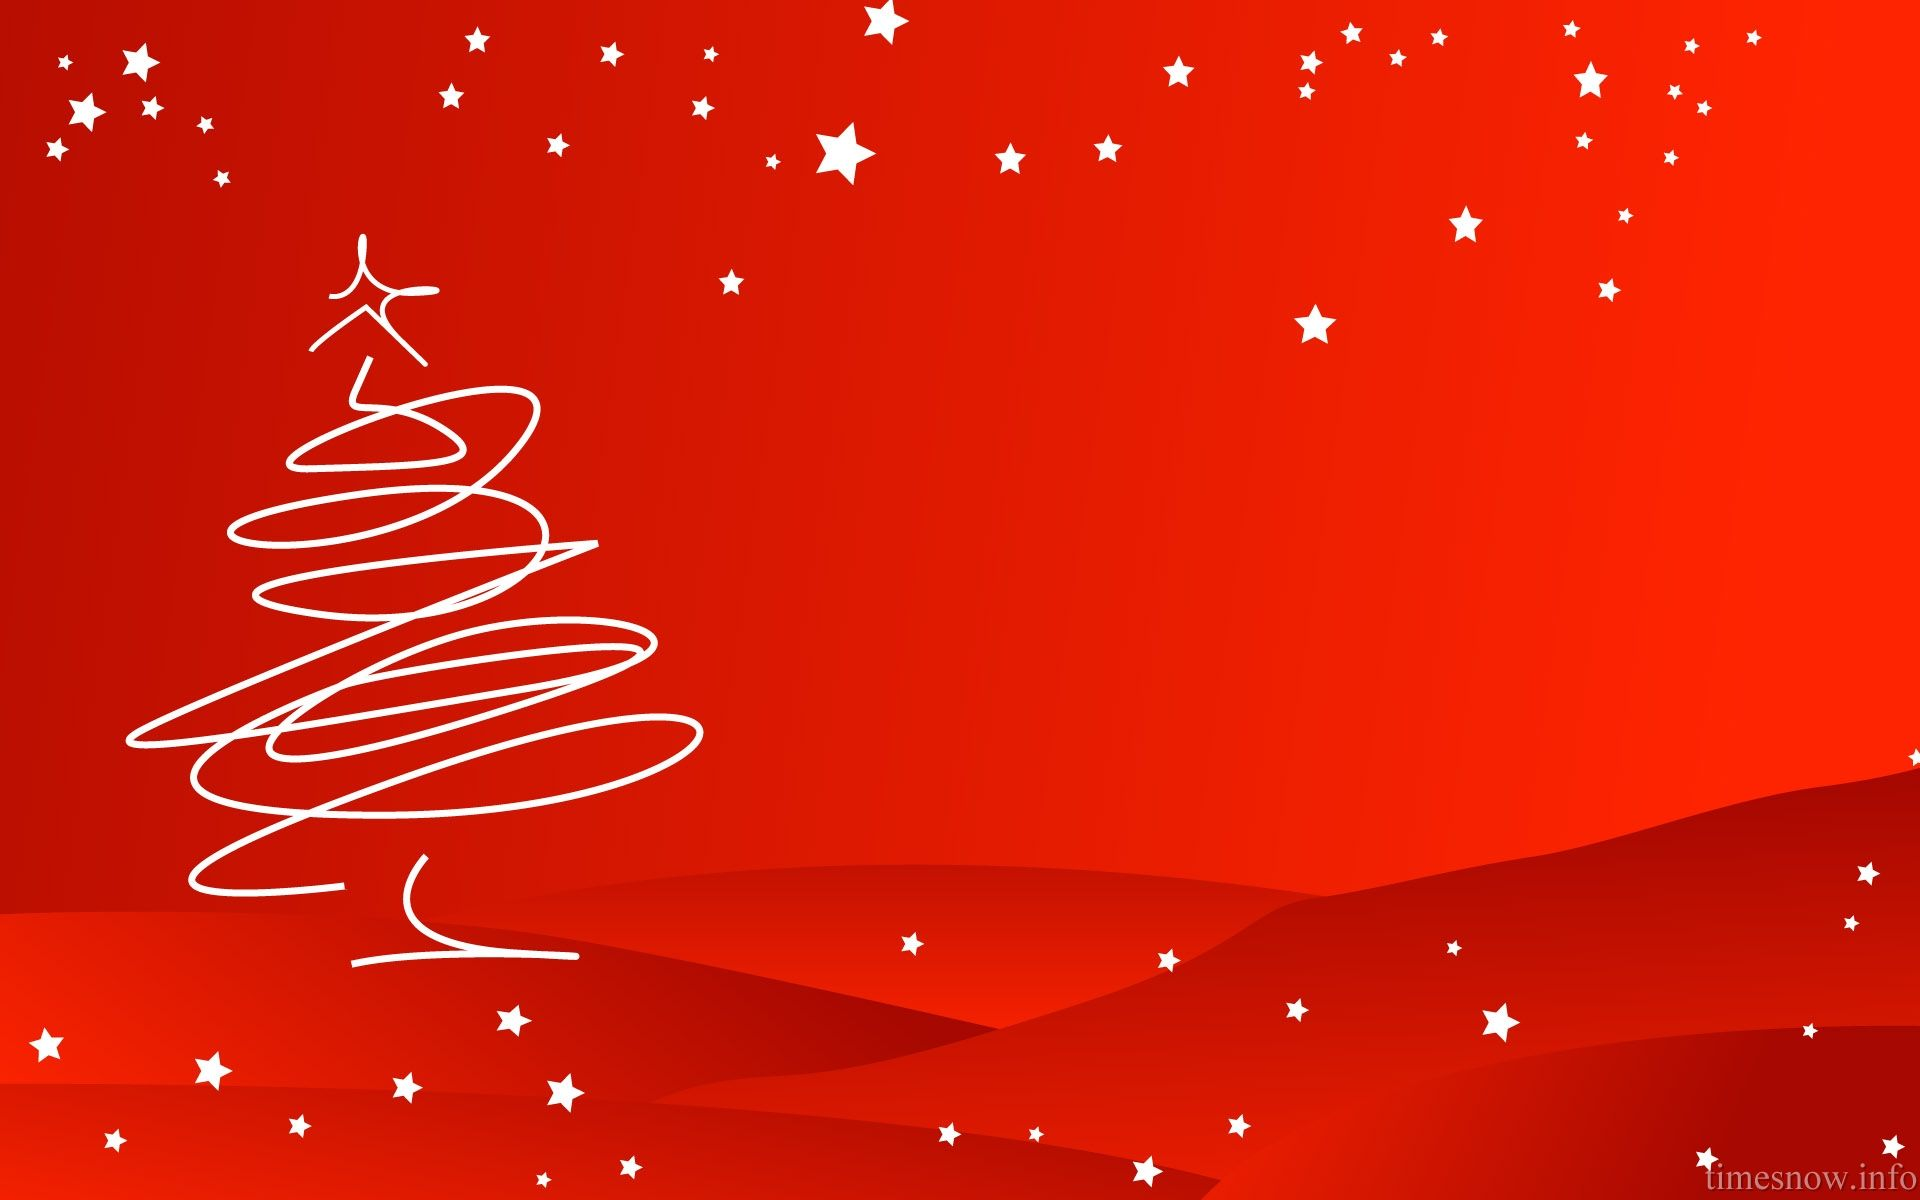 Background Lineart Red Holiday Christmas Wallpapers Hd